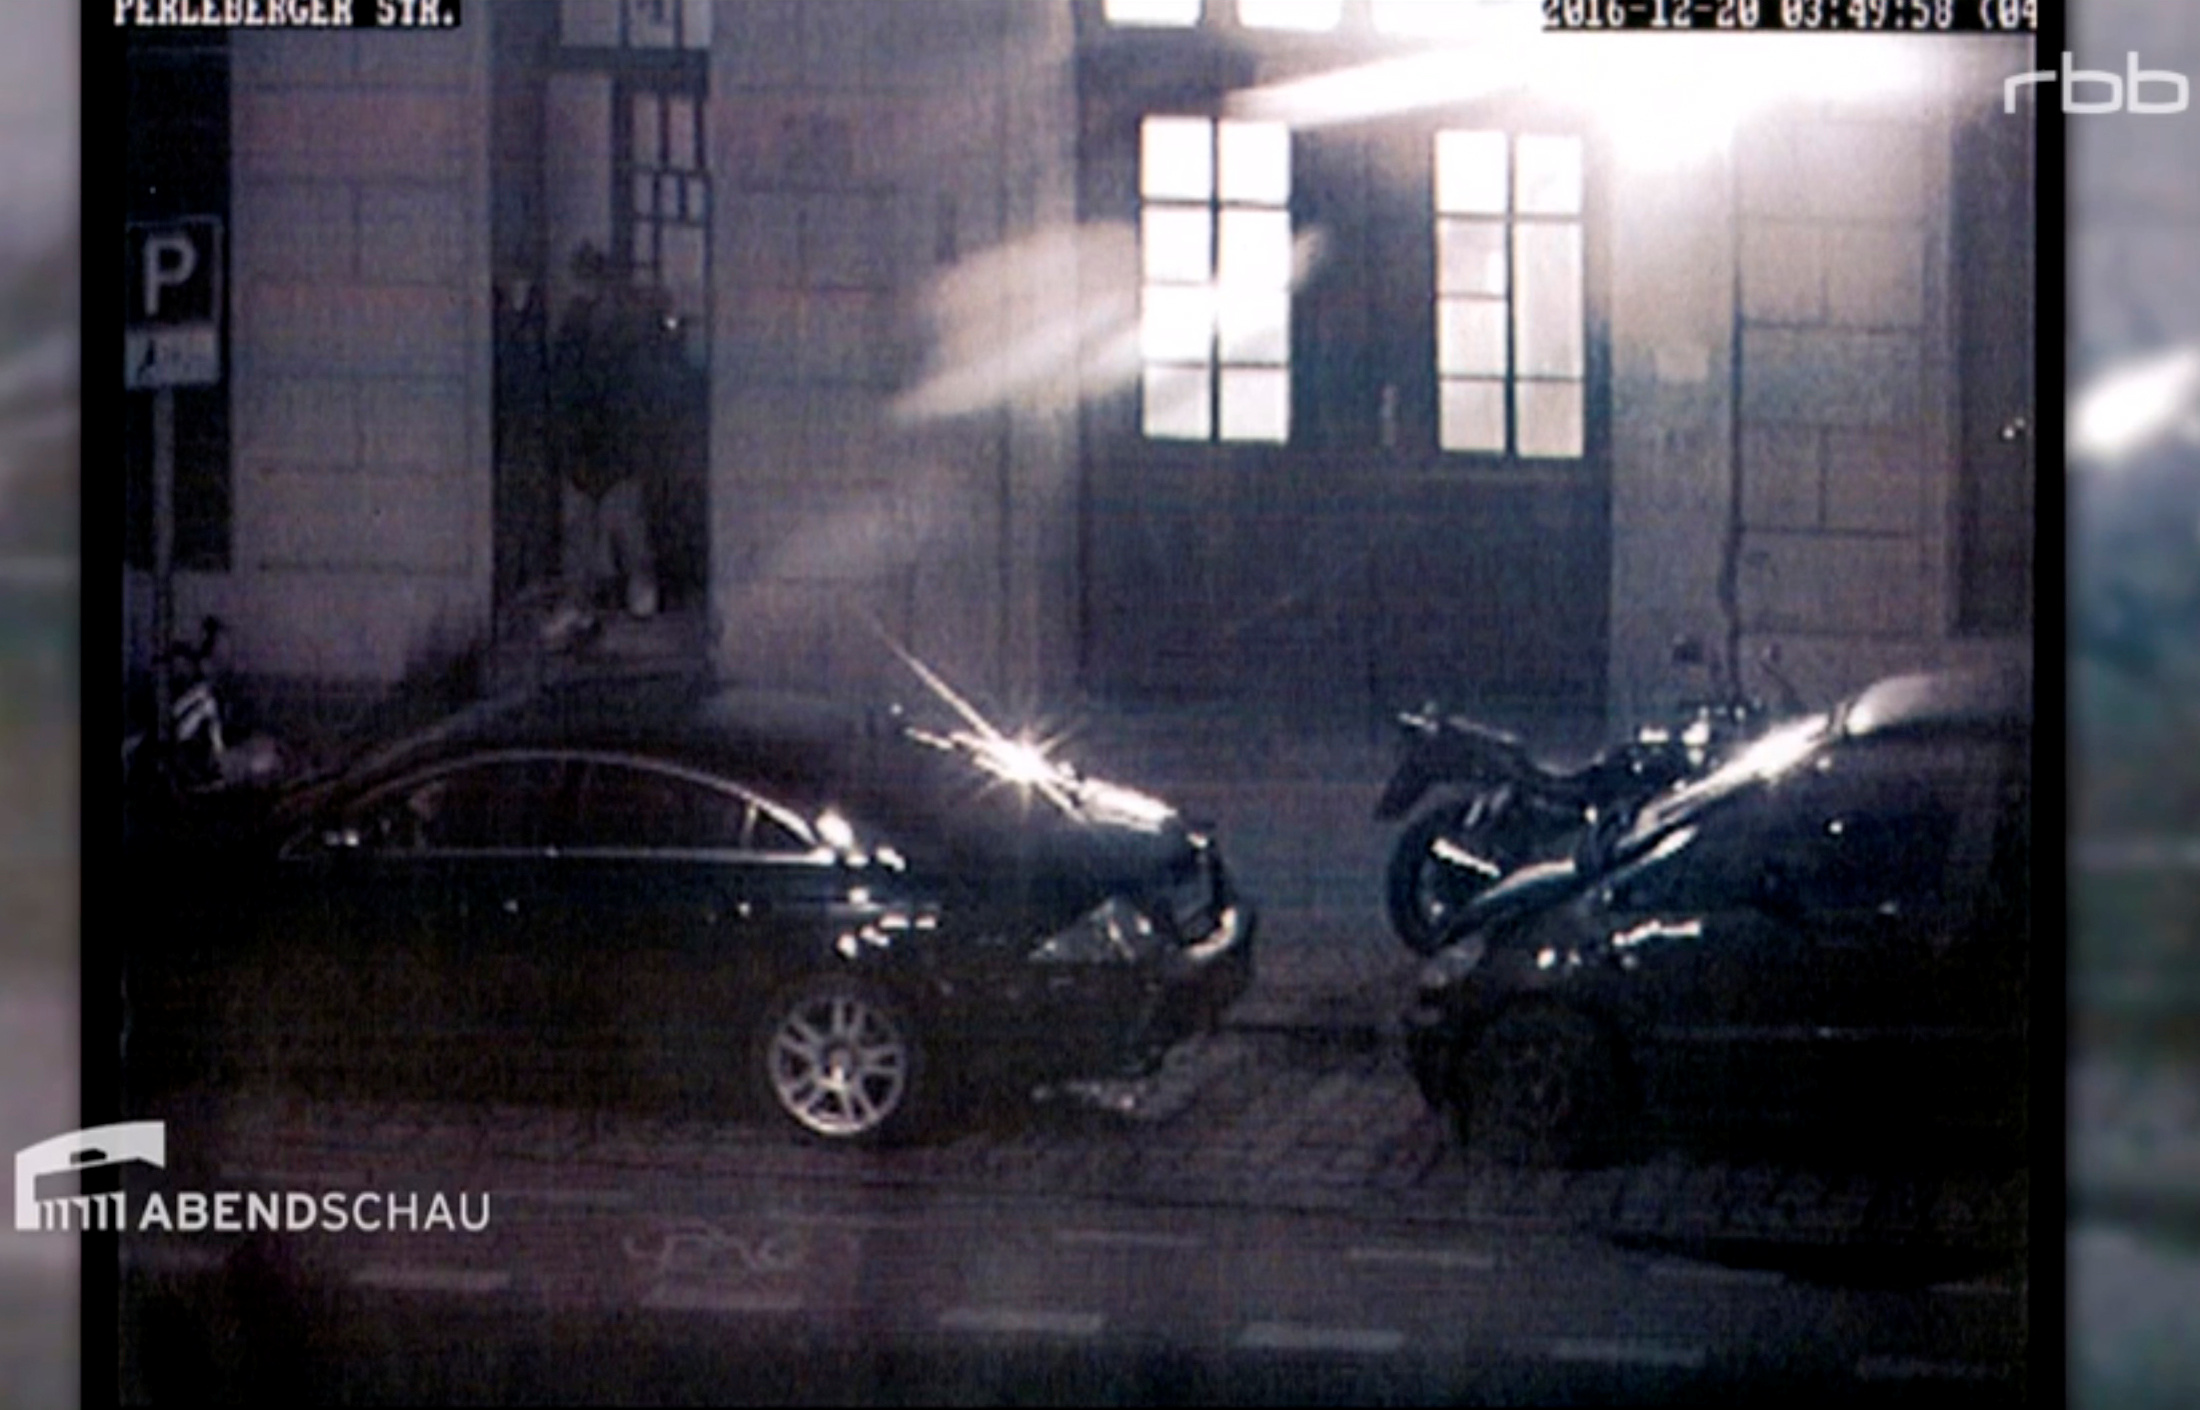 Still image taken from a surveillance camera made available on the RBB Abendschau website shows Anis Amri leaving a Berlin mosque